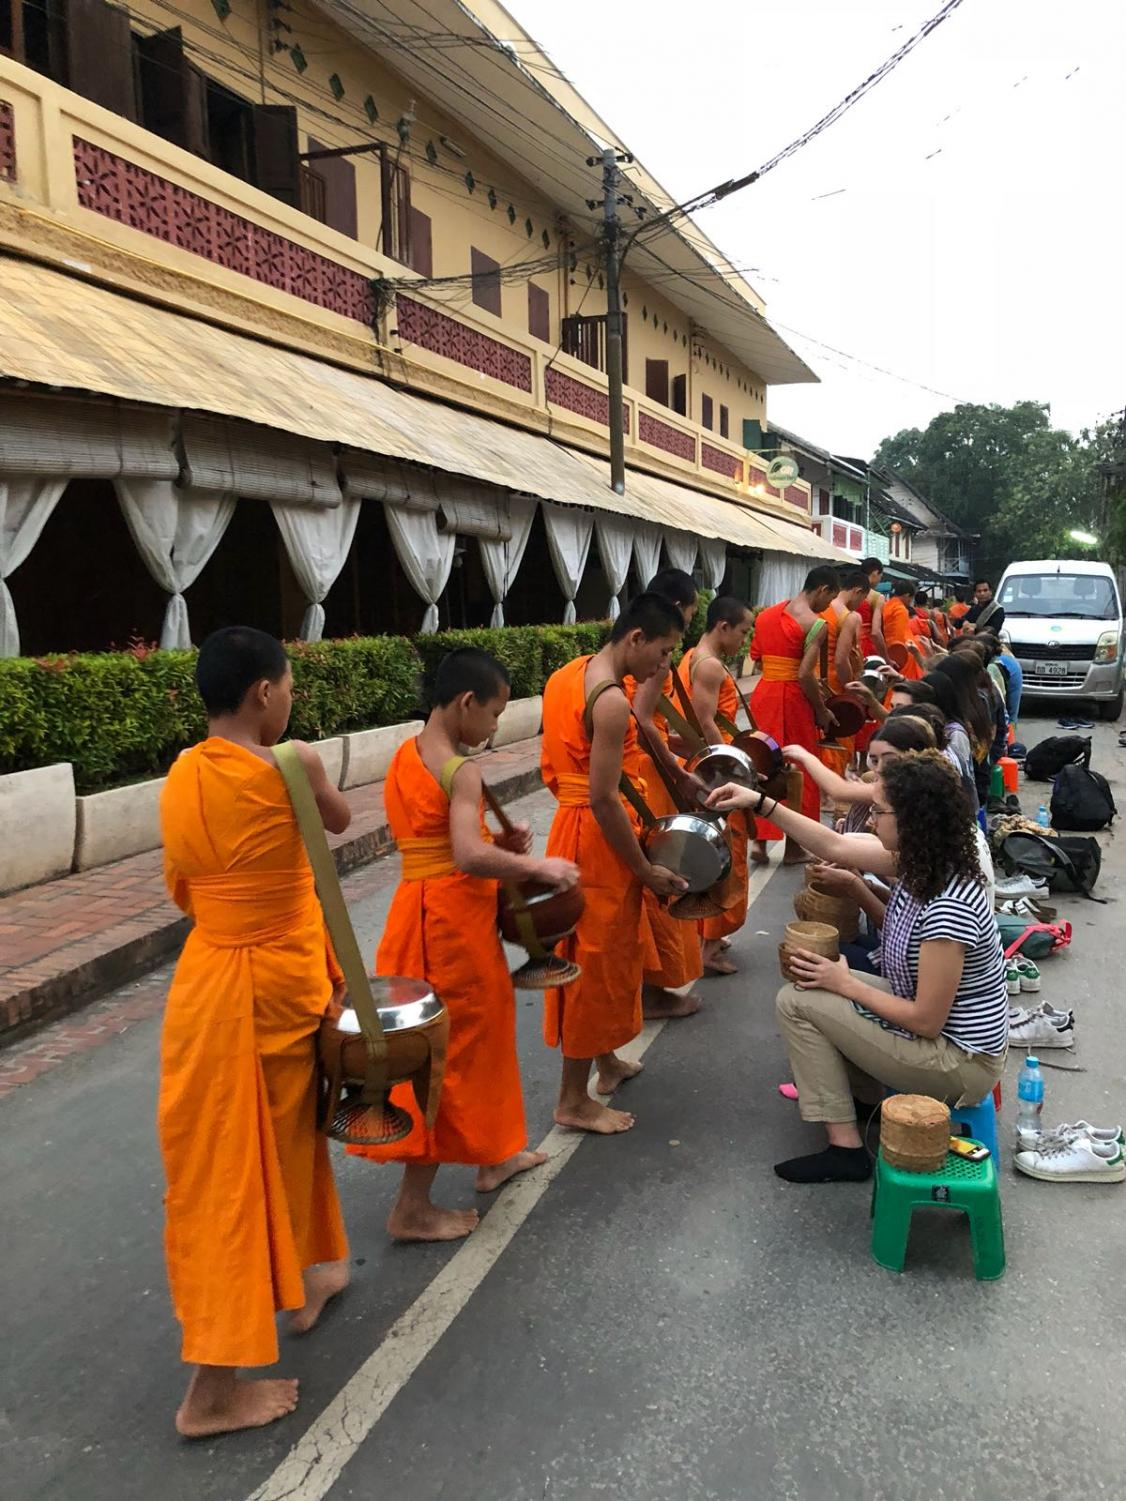 Students participate in the early morning Alms Giving Ceremony in Luang Prabang, Laos. In this ceremony, local Buddhist monks with alms bowls by their sides walk through the streets of Luang Prabang to receive food donations, most commonly steamed rice.